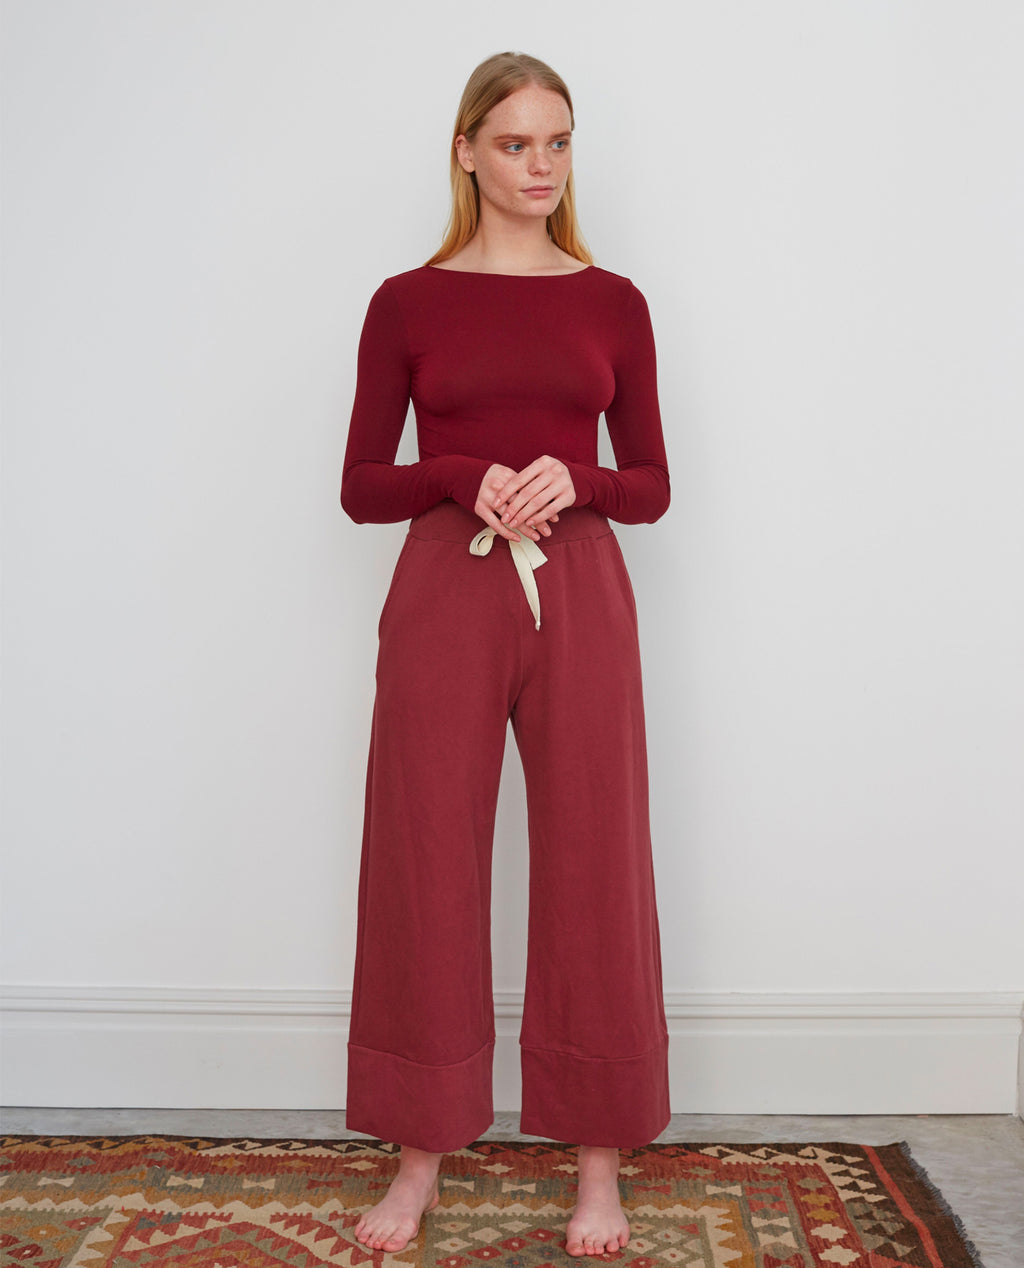 APHRA Organic Cotton Trousers In Burgundy